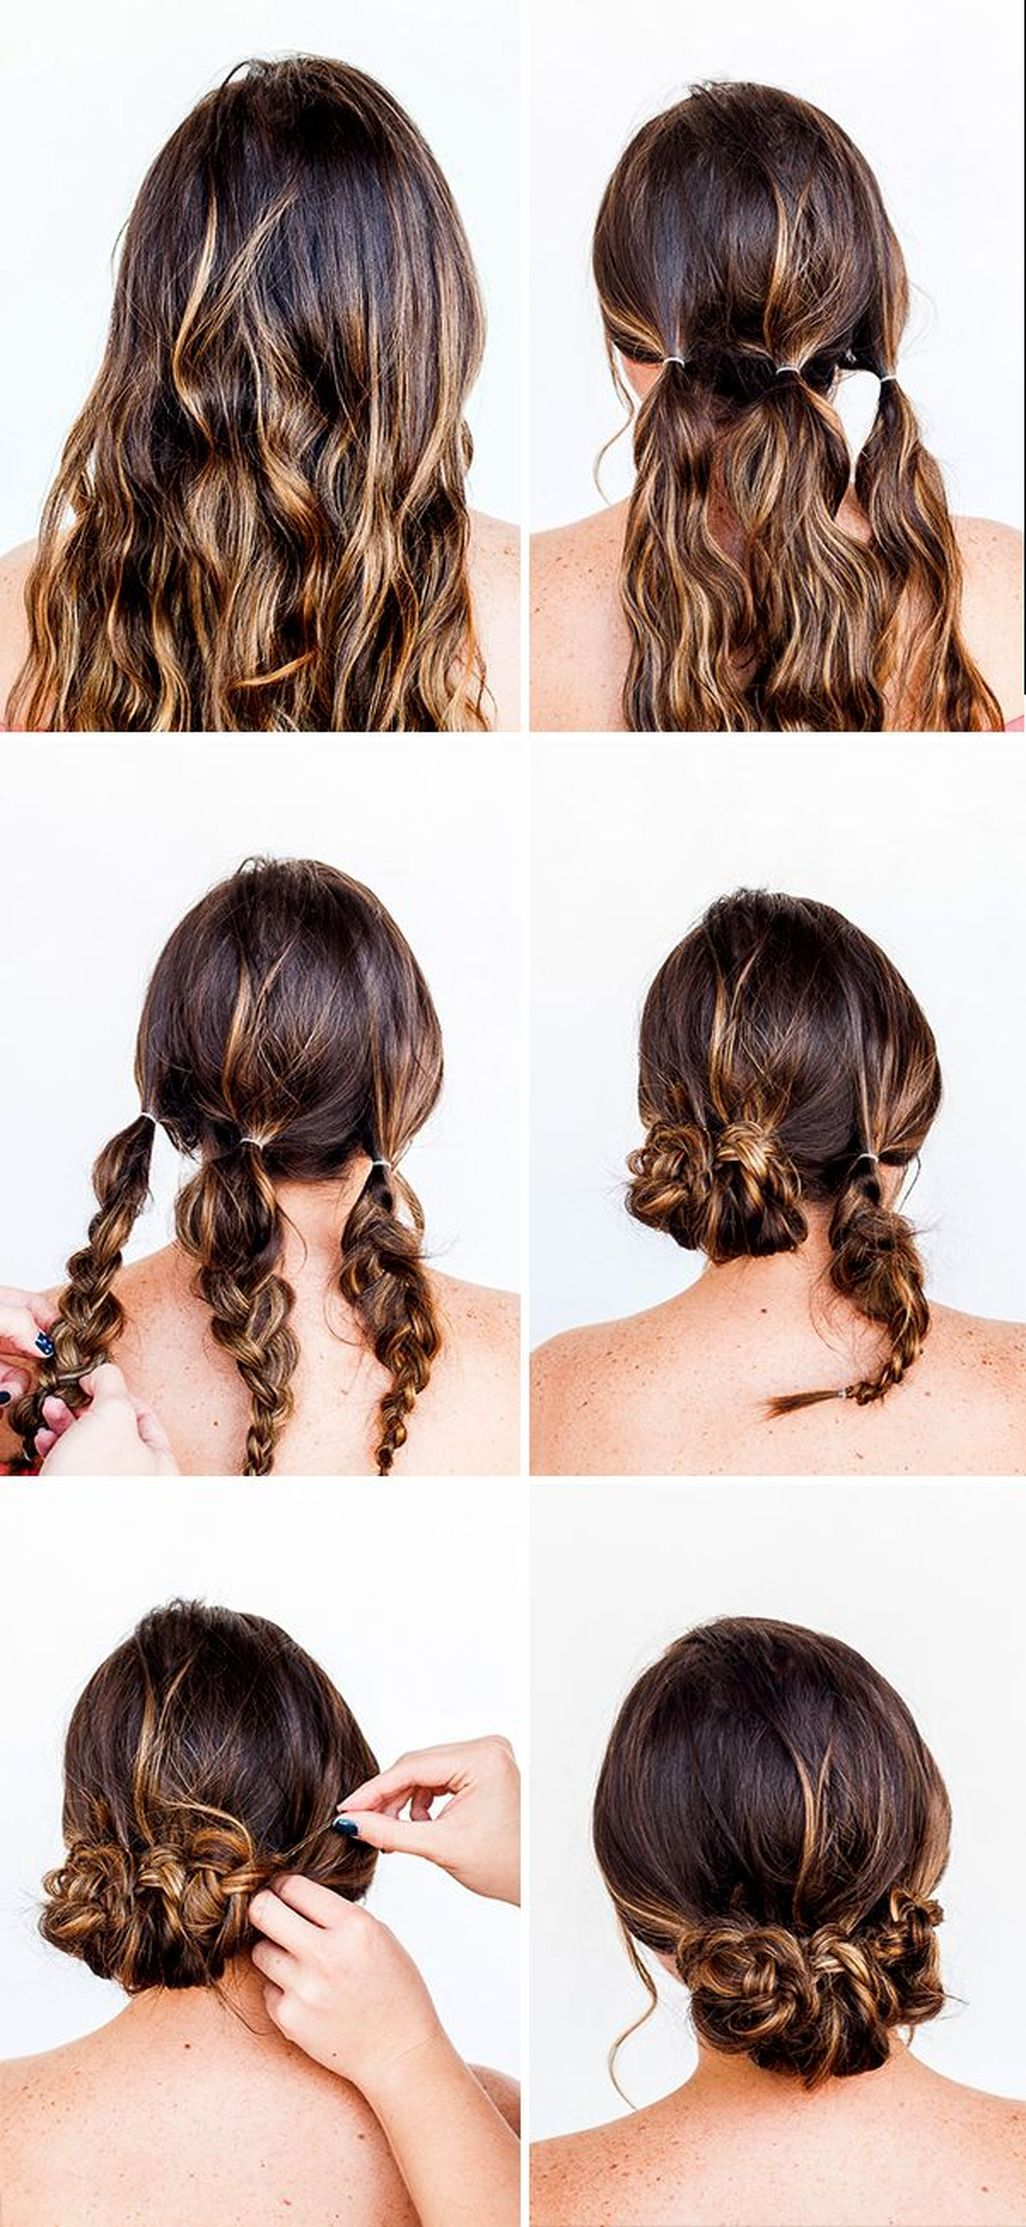 Pin By Jill Mcmahon On Updos In 2018 Pinterest Hair Hair Styles